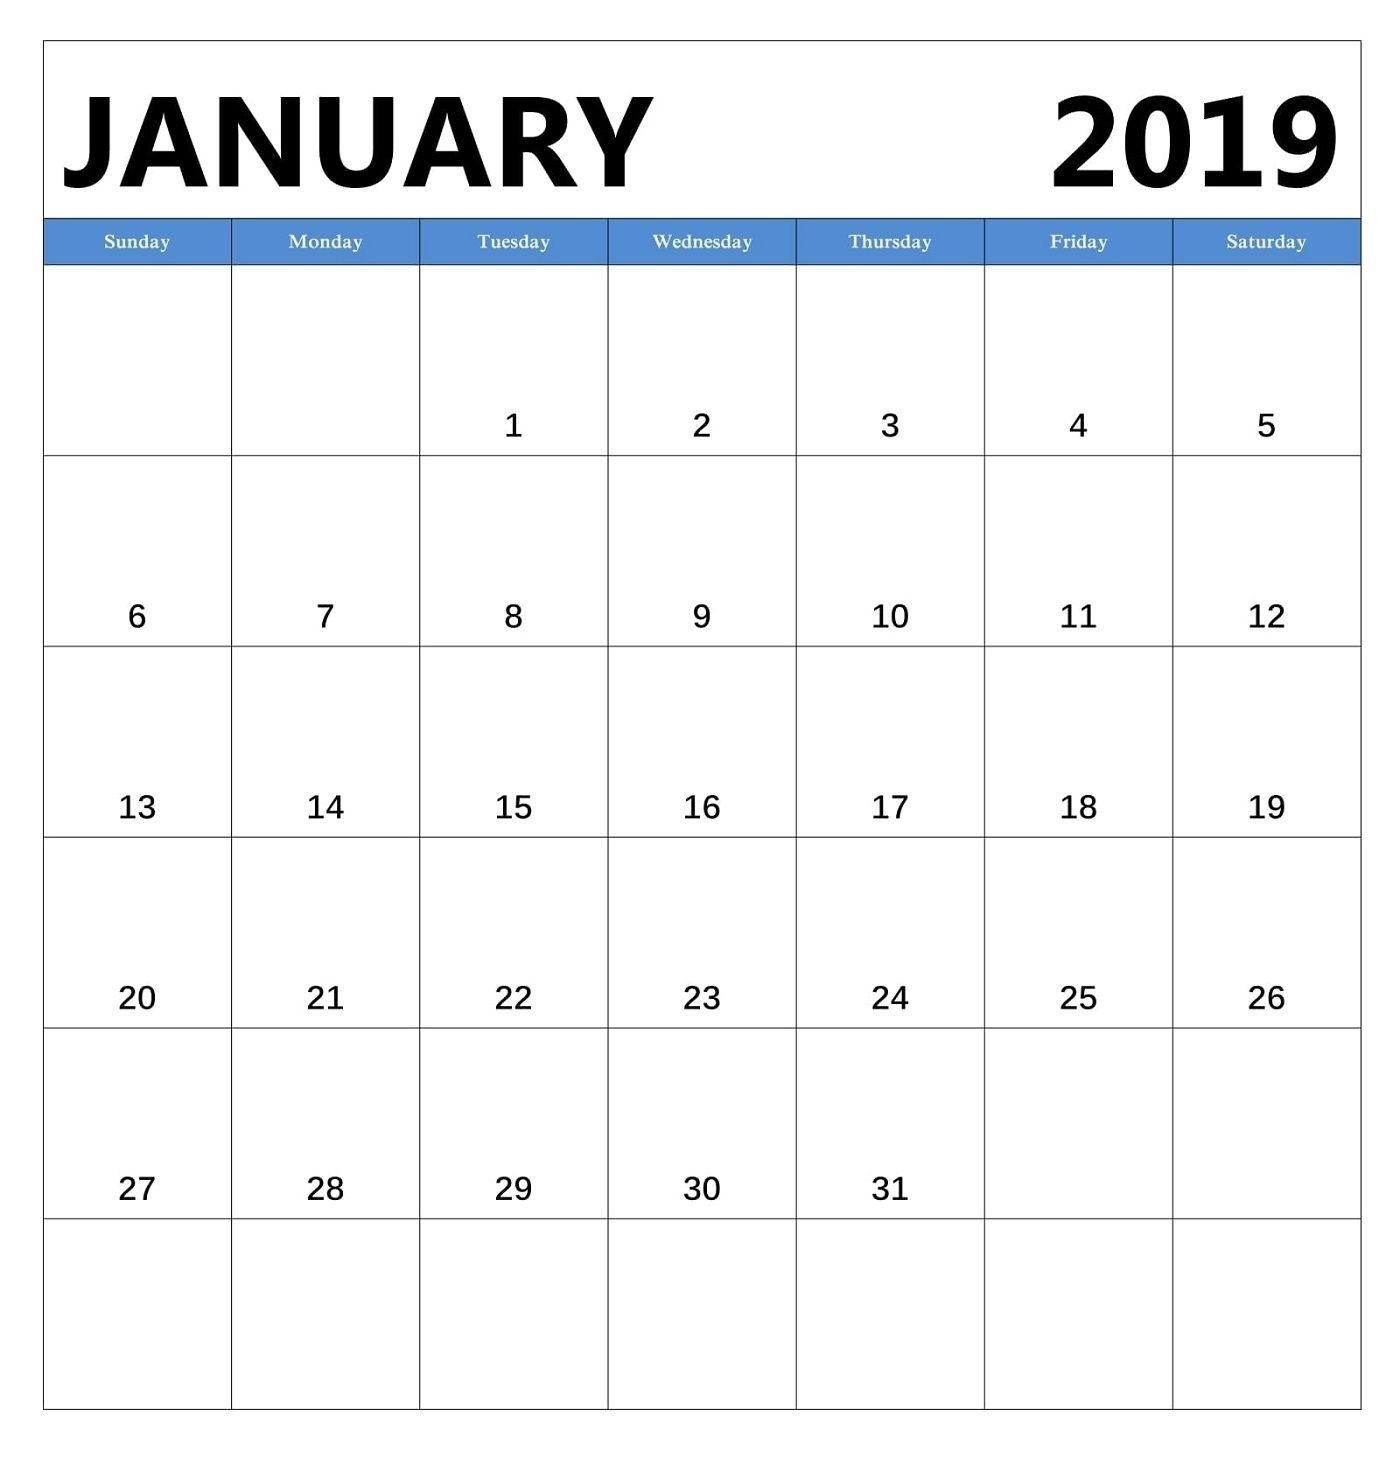 Monthly Calendar 2019 Excel Template Más Reciente January 2019 Monthly Calendar Editable January2019calendar Of Monthly Calendar 2019 Excel Template Más Actual Training Calendar Template Degree Planning Worksheet Unique 2019